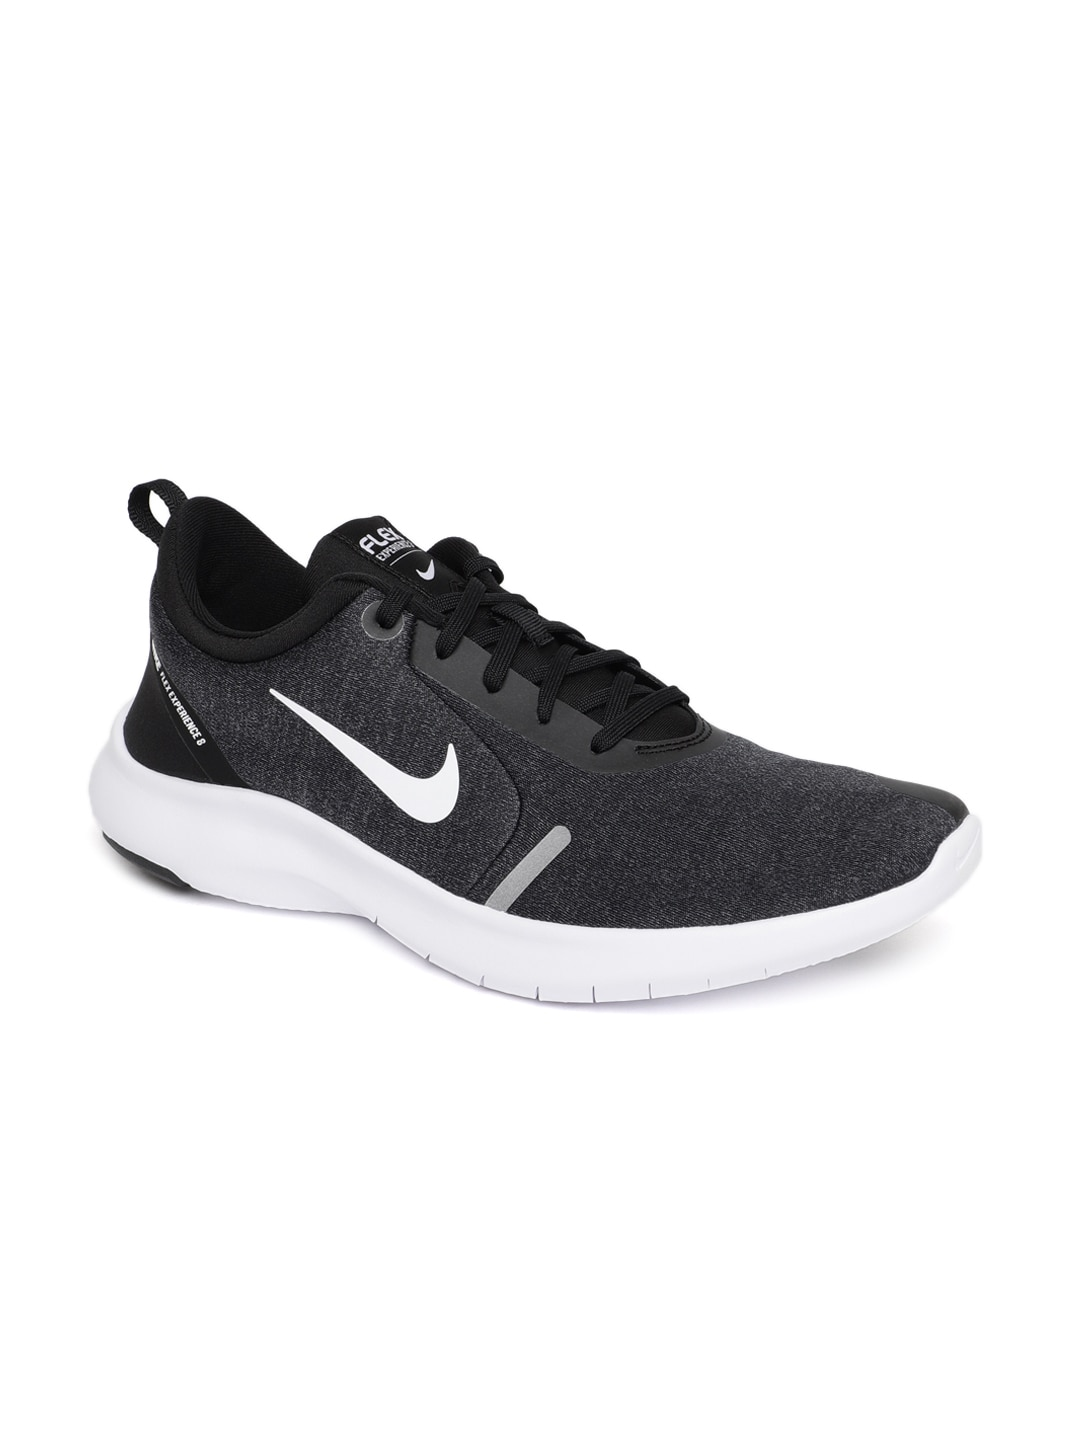 buy popular 8ee69 f43f4 Nike Running Shoes - Buy Nike Running Shoes Online   Myntra